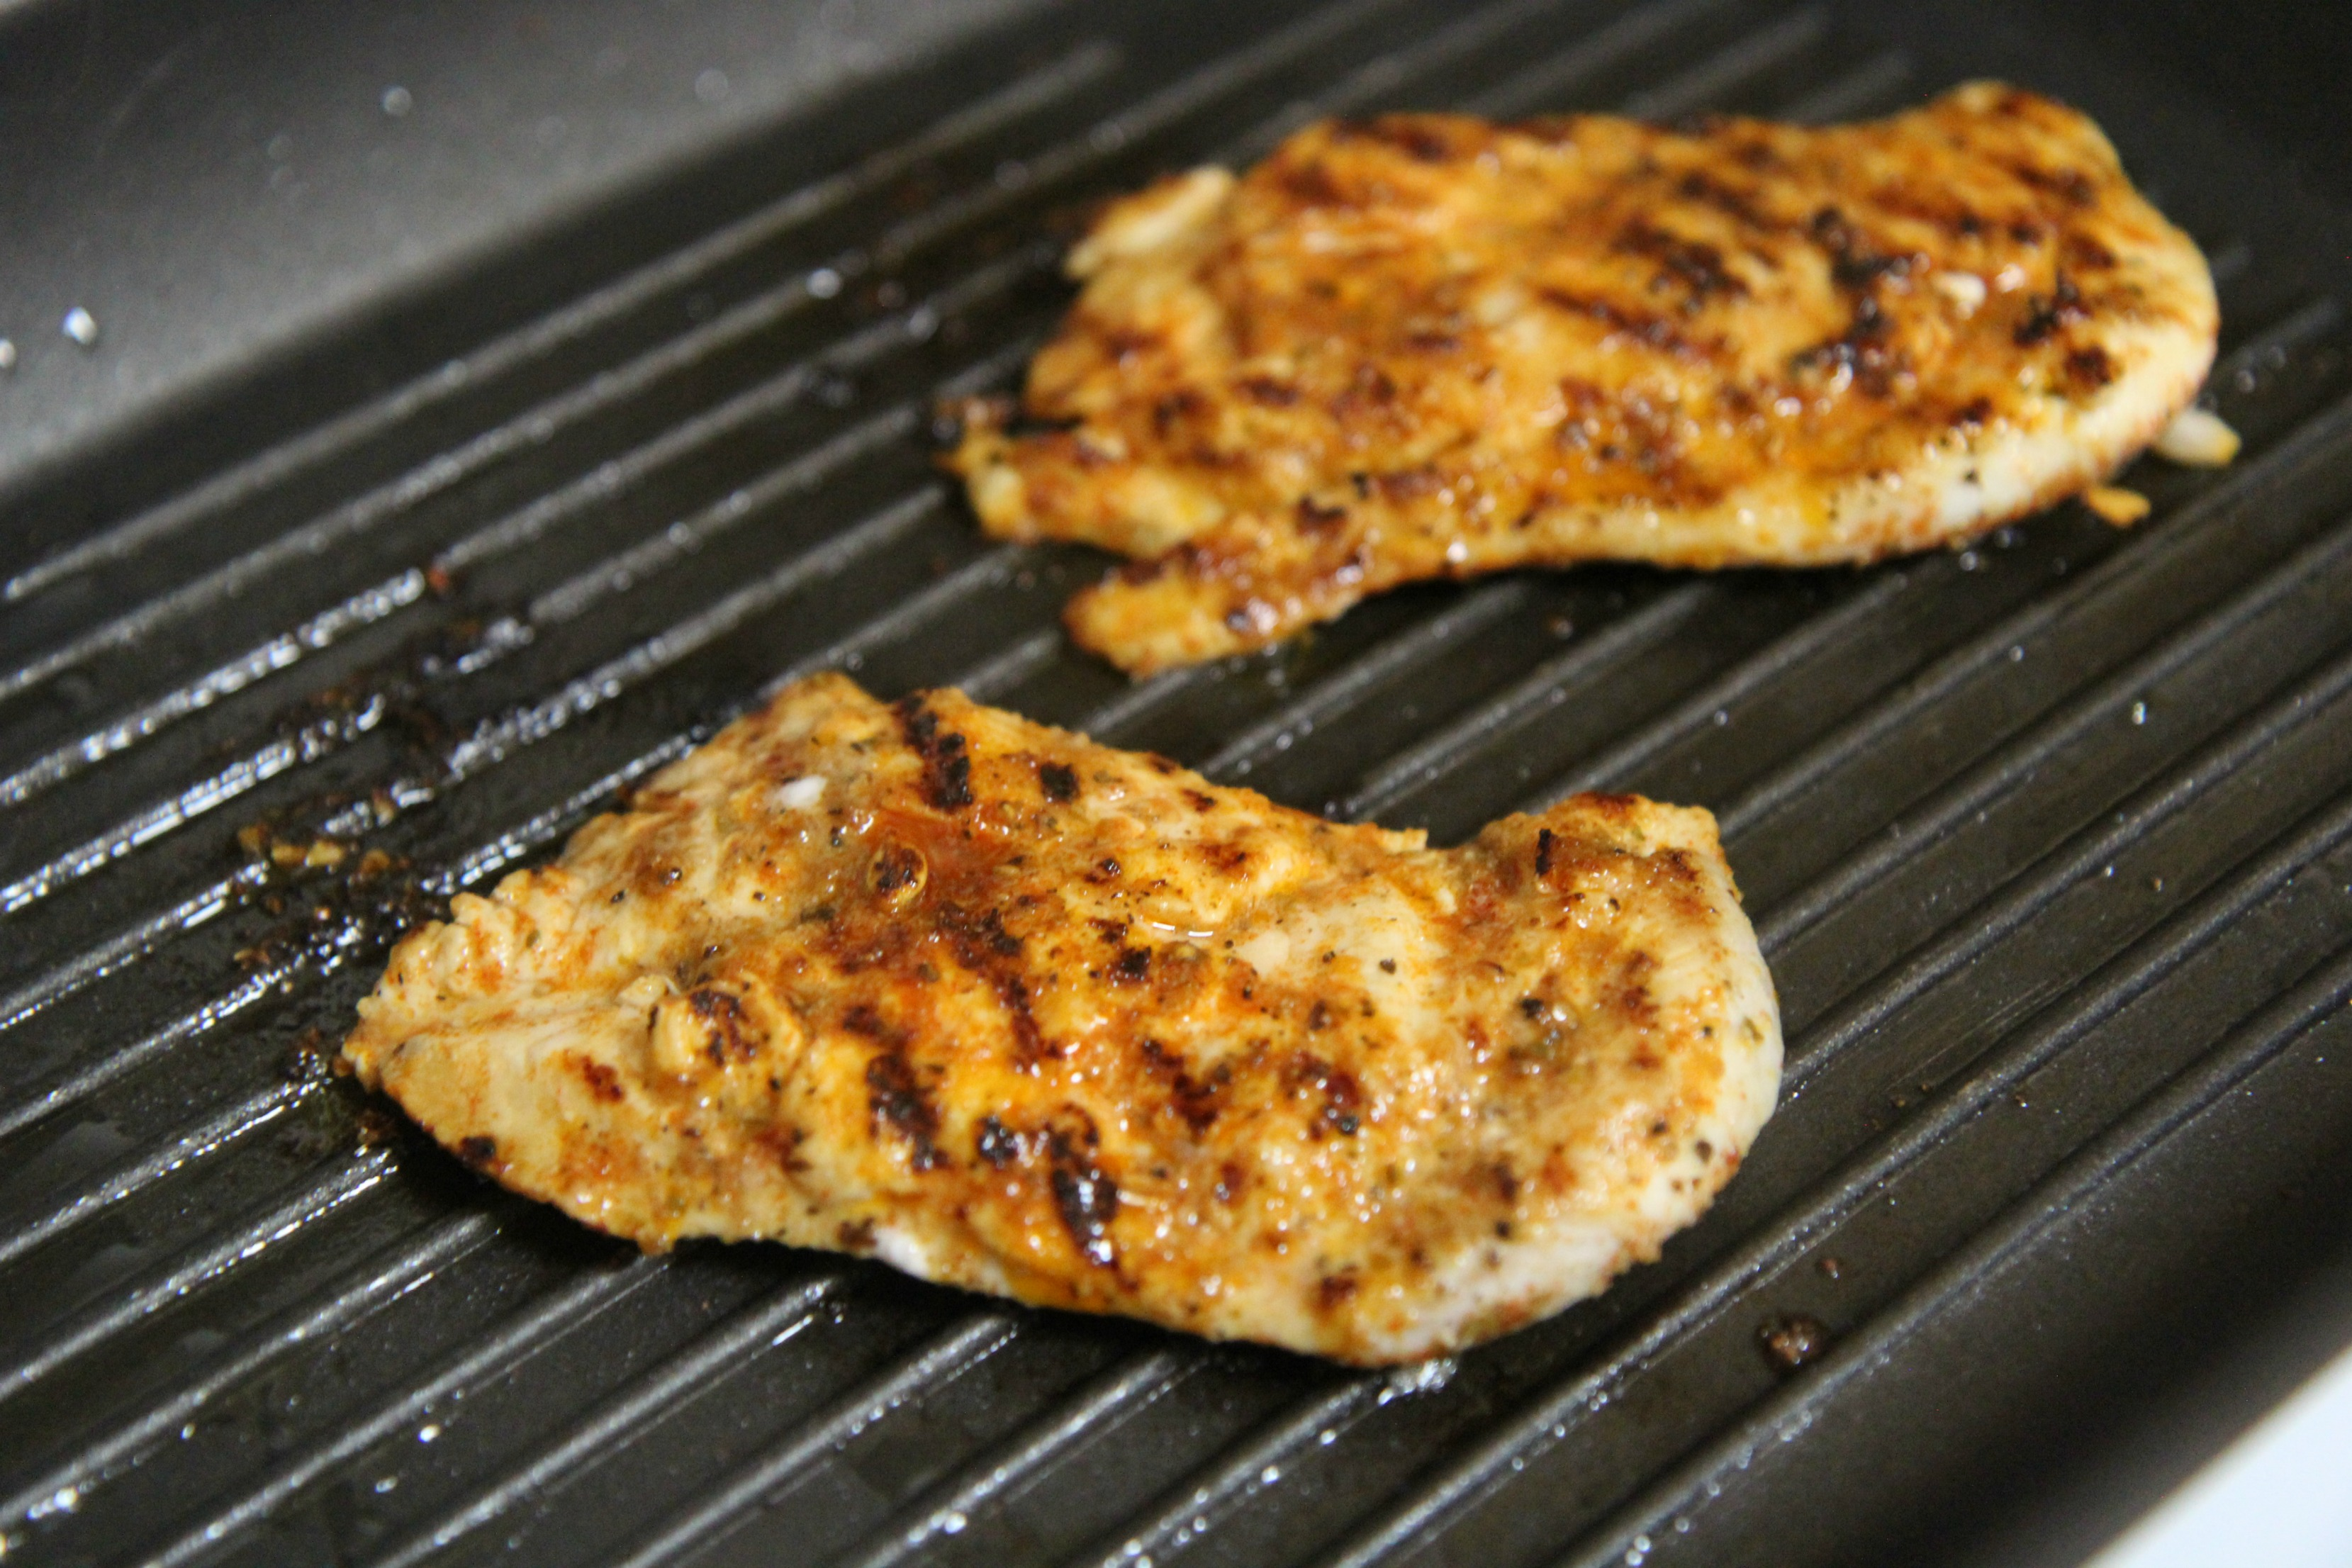 The grilled chicken is seasoned with some tex-mex spices and a squirt of lime juice.